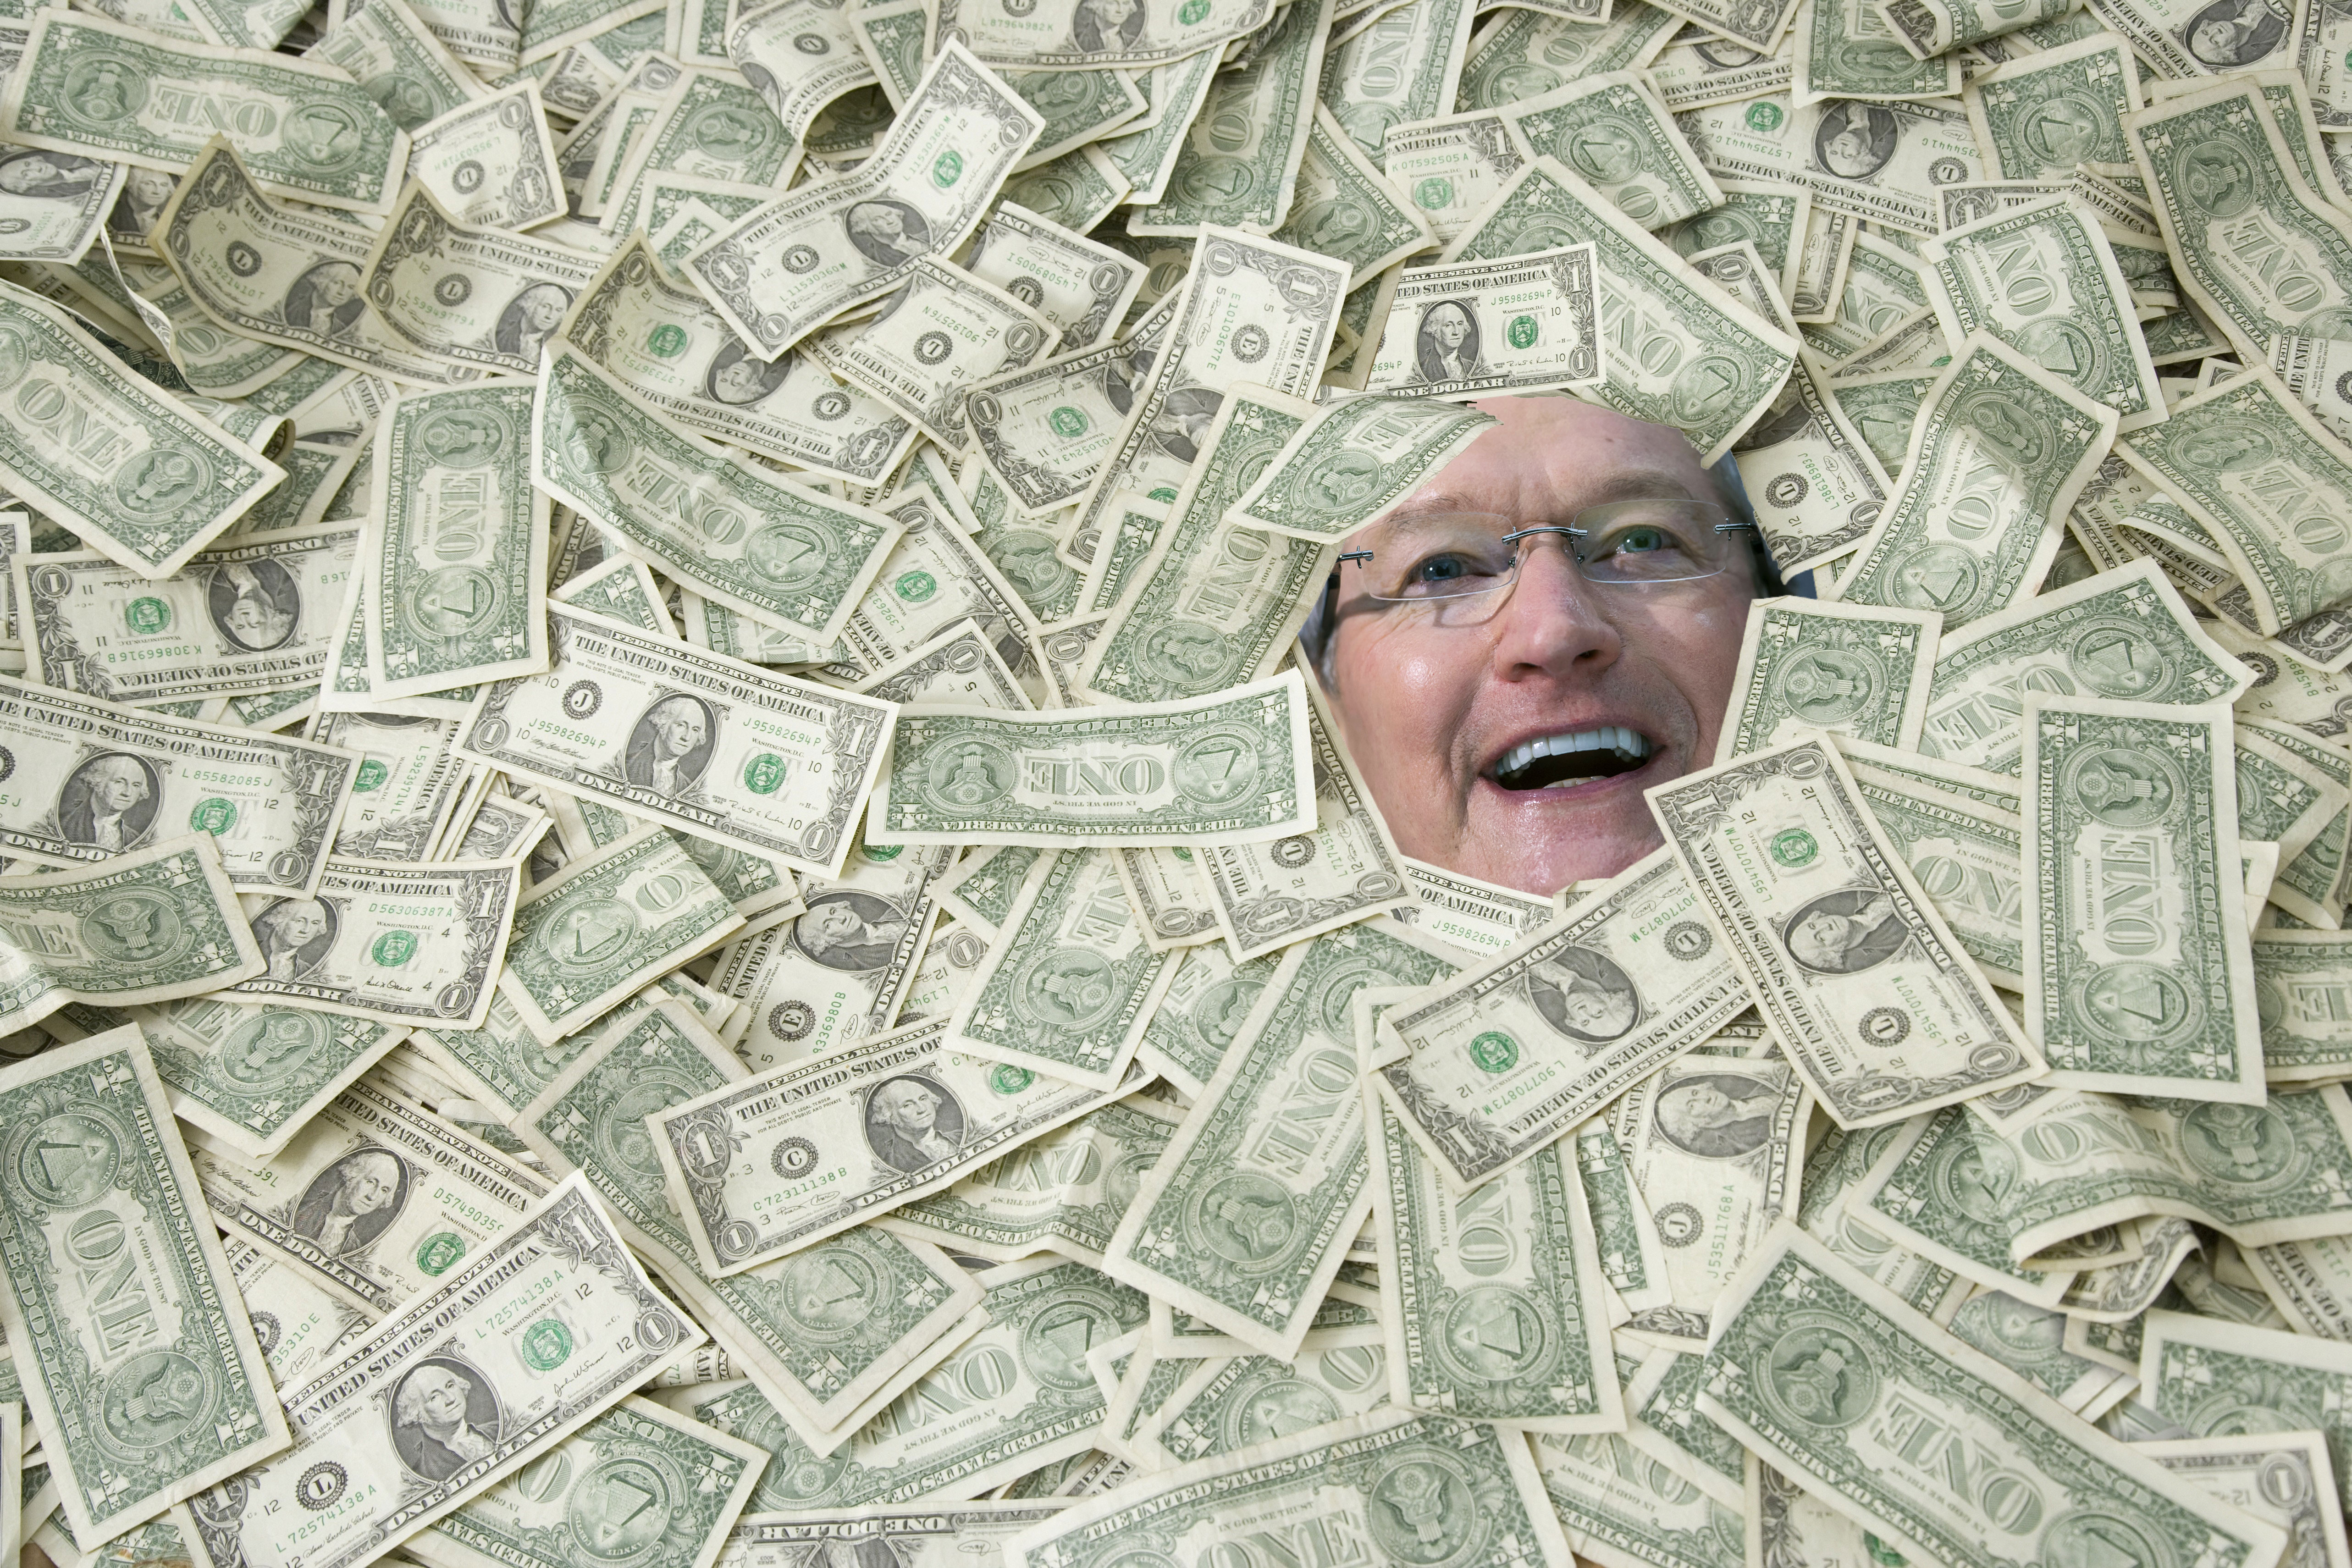 A $1 trillion market cap for Apple is within sight if all goes well.